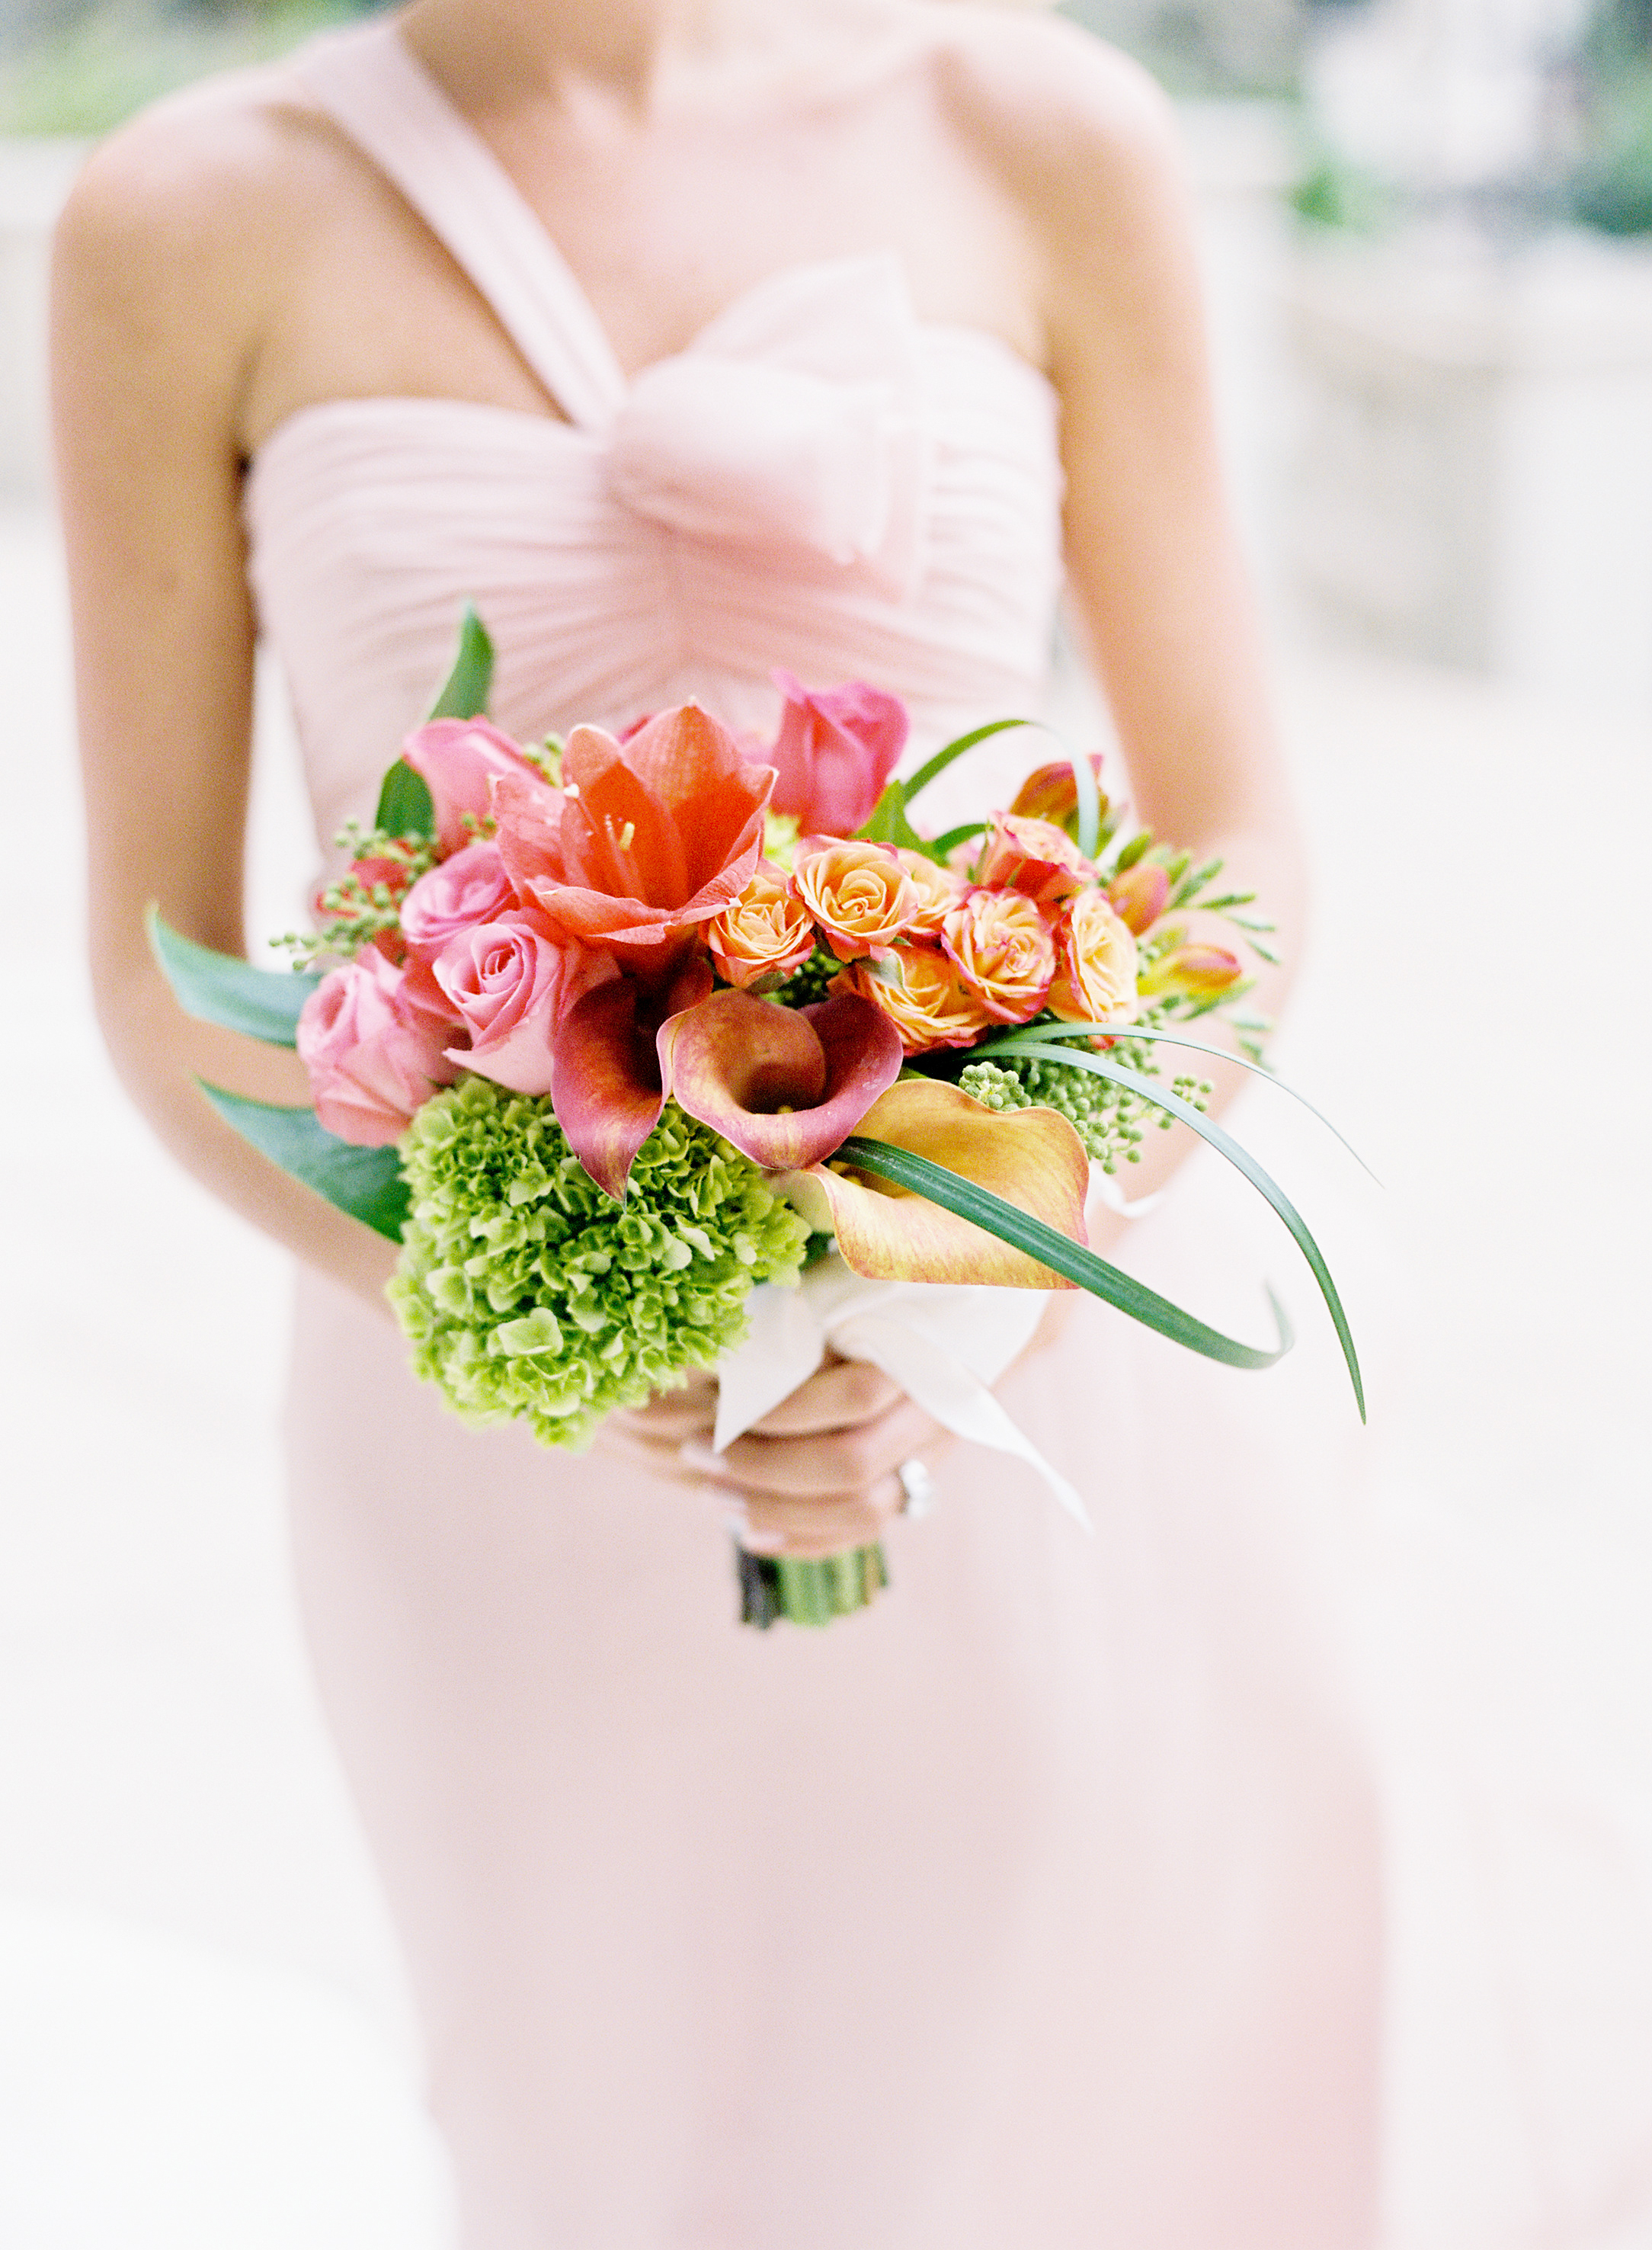 Flowers & Decor, Real Weddings, Wedding Style, orange, pink, green, Bridesmaid Bouquets, Classic, Classic Real Weddings, Classic Weddings, Classic Wedding Flowers & Decor, Summer Wedding Flowers & Decor, Roses, Elegant, Florida, Calla-lilies